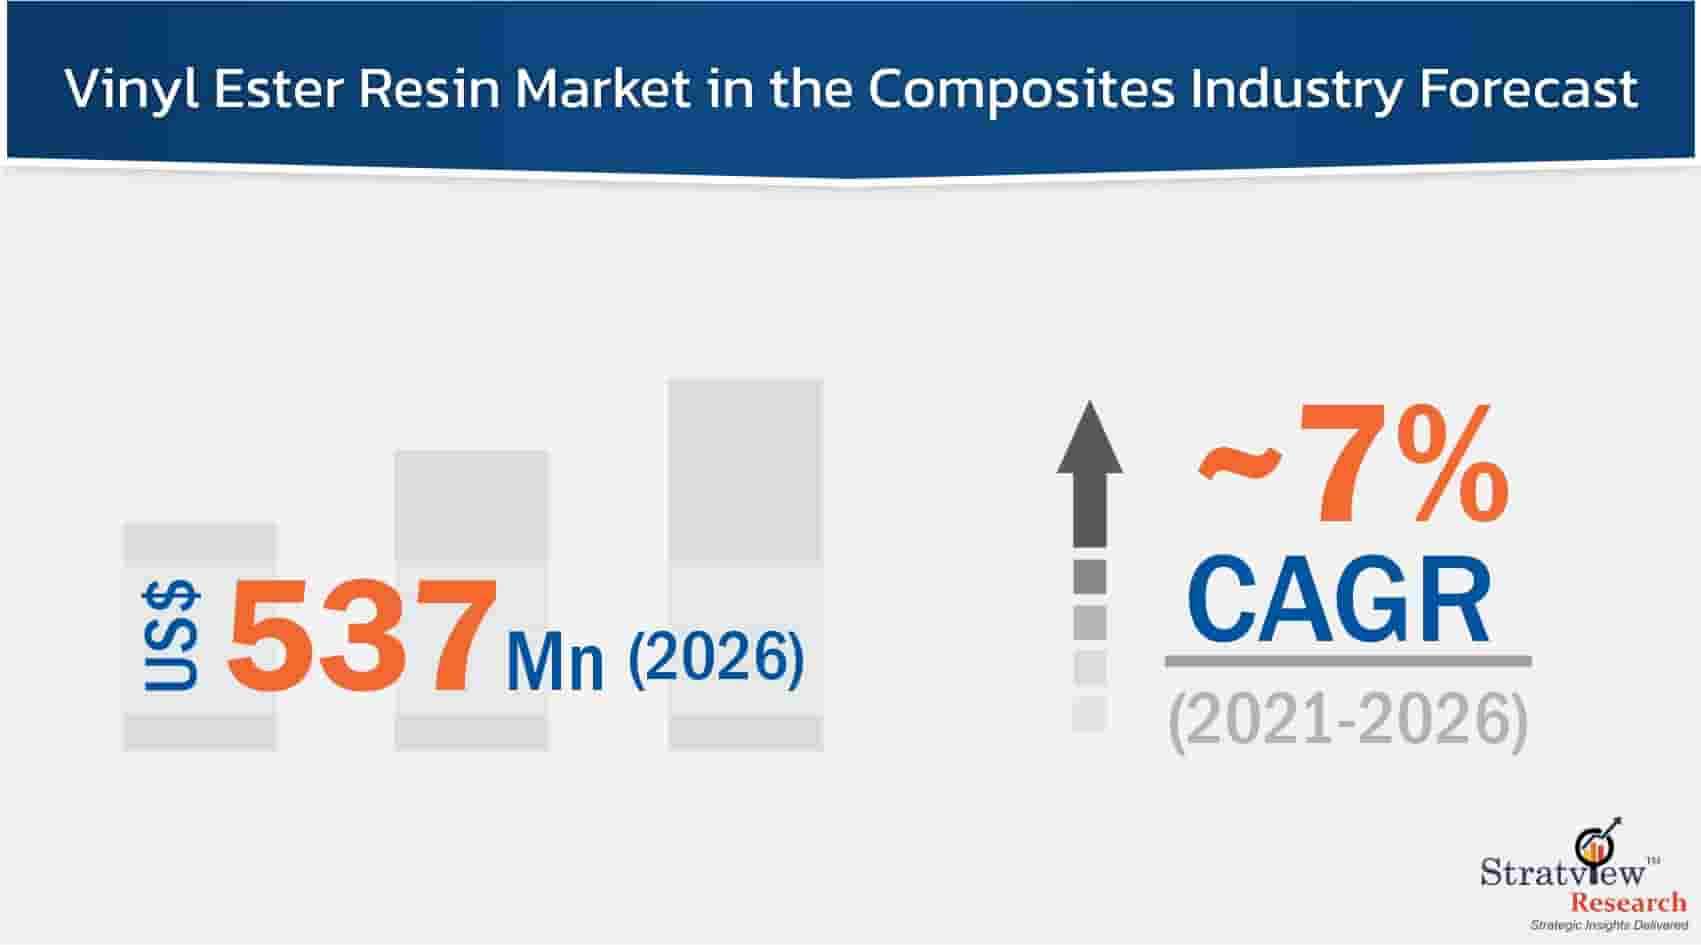 Vinyl-Ester-Resin-Market-in-the-Composites-Industry-Forecast